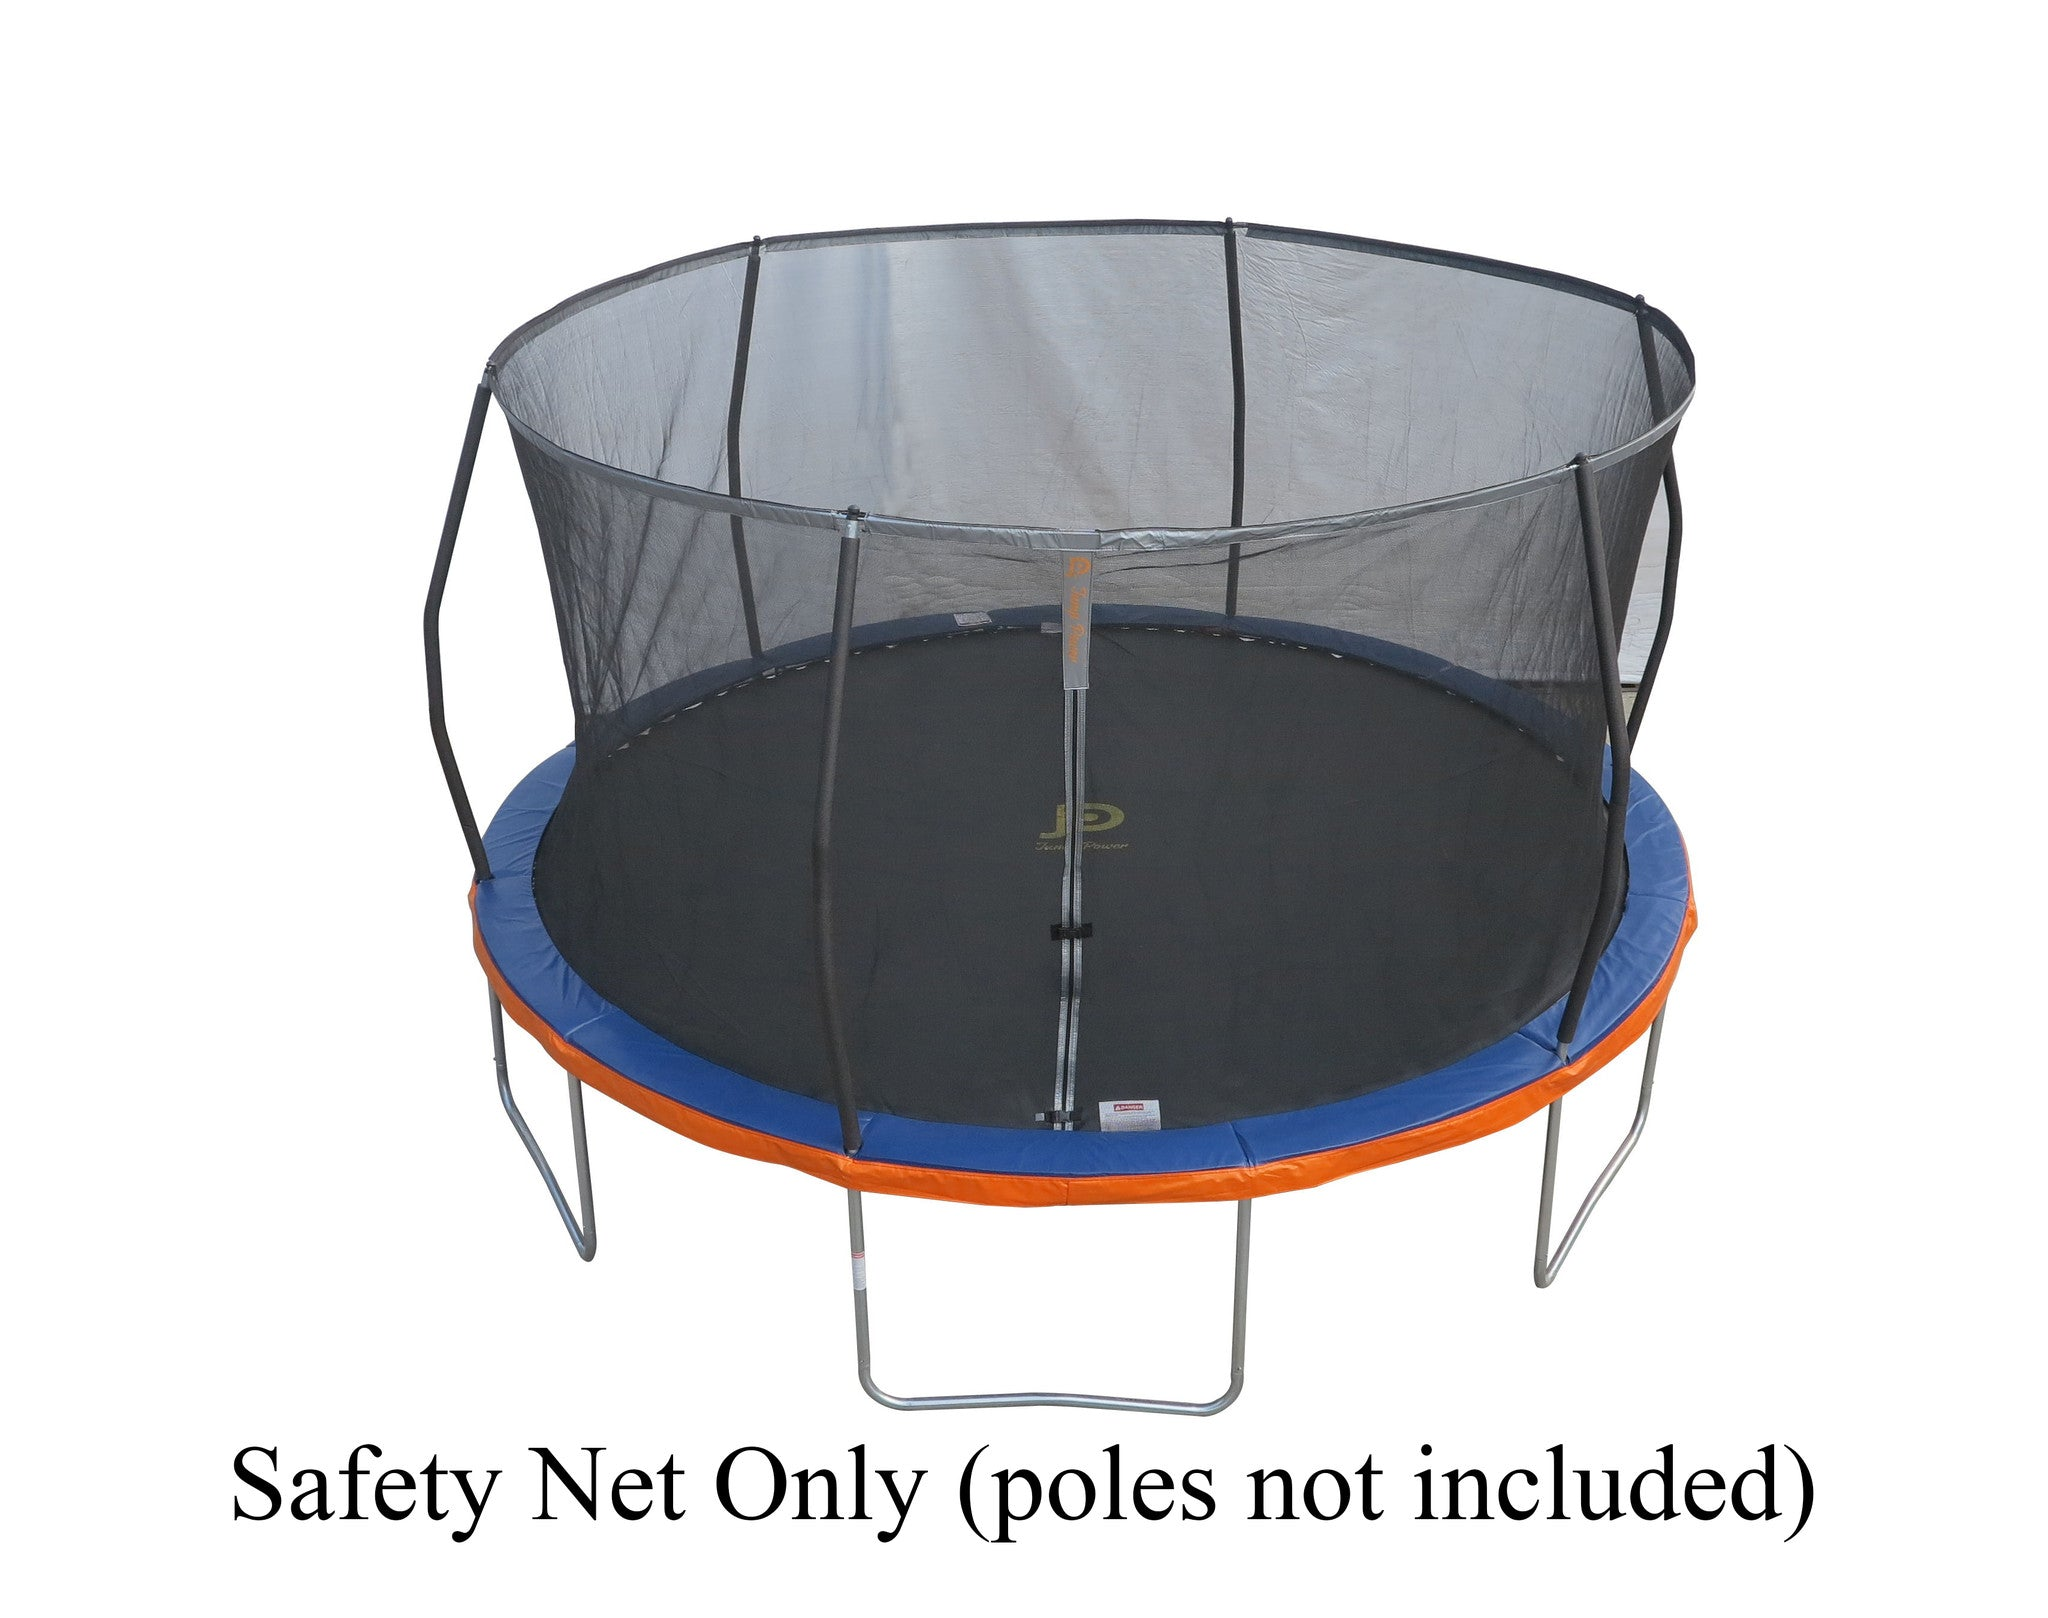 14ft. Trampoline Replacement Safety Net *Ultra-Grade*